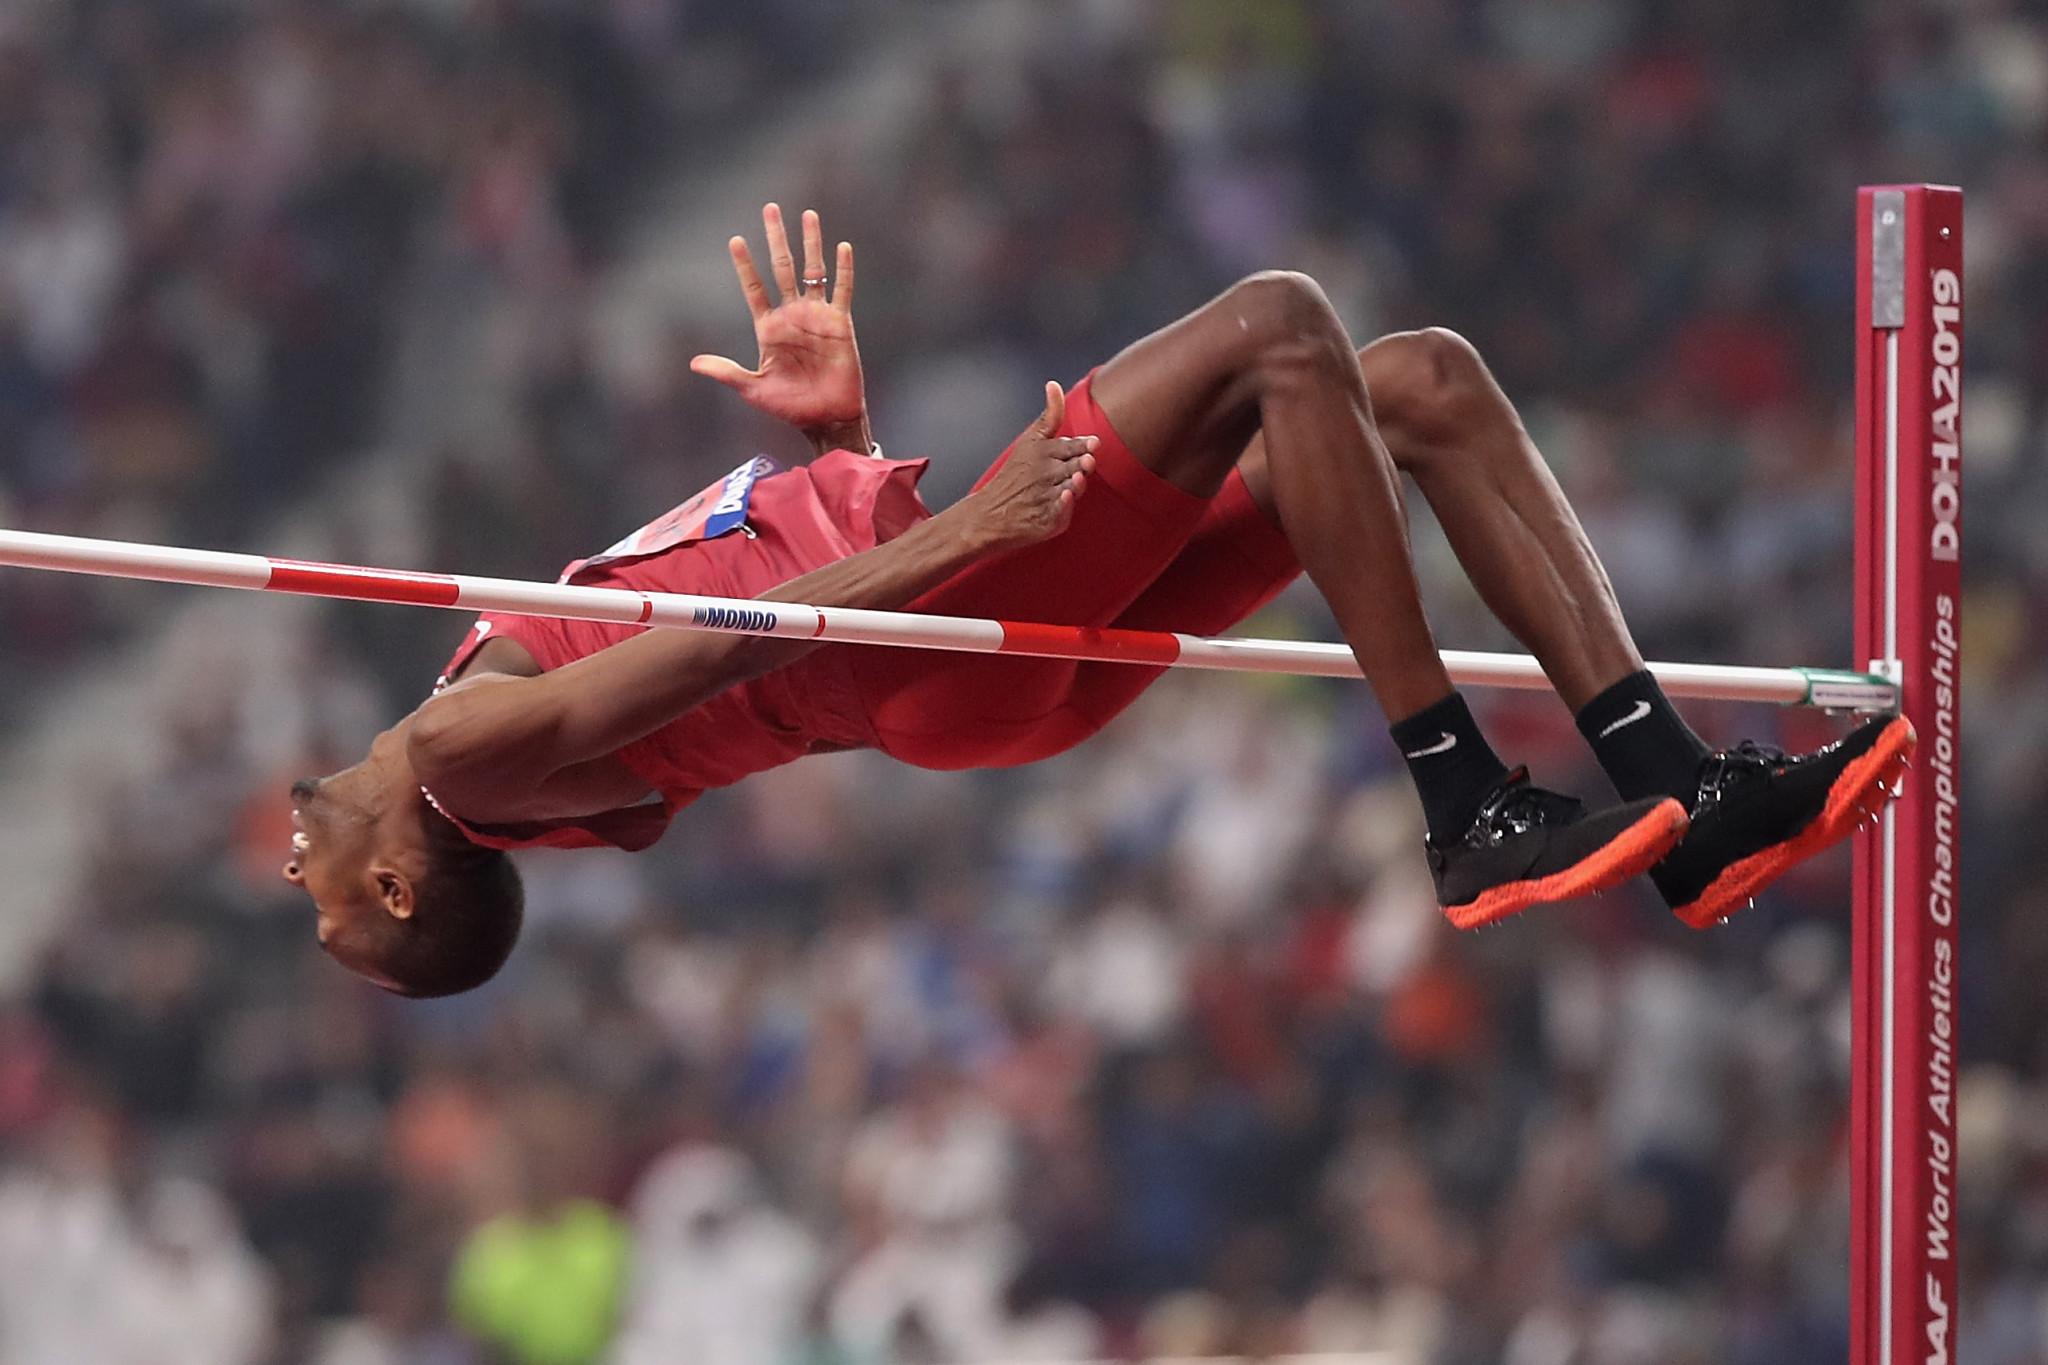 Qatar's two-time world high jump champion Mutaz Essa Barshim is among the 30 candidates for election to the Commission ©Getty Images